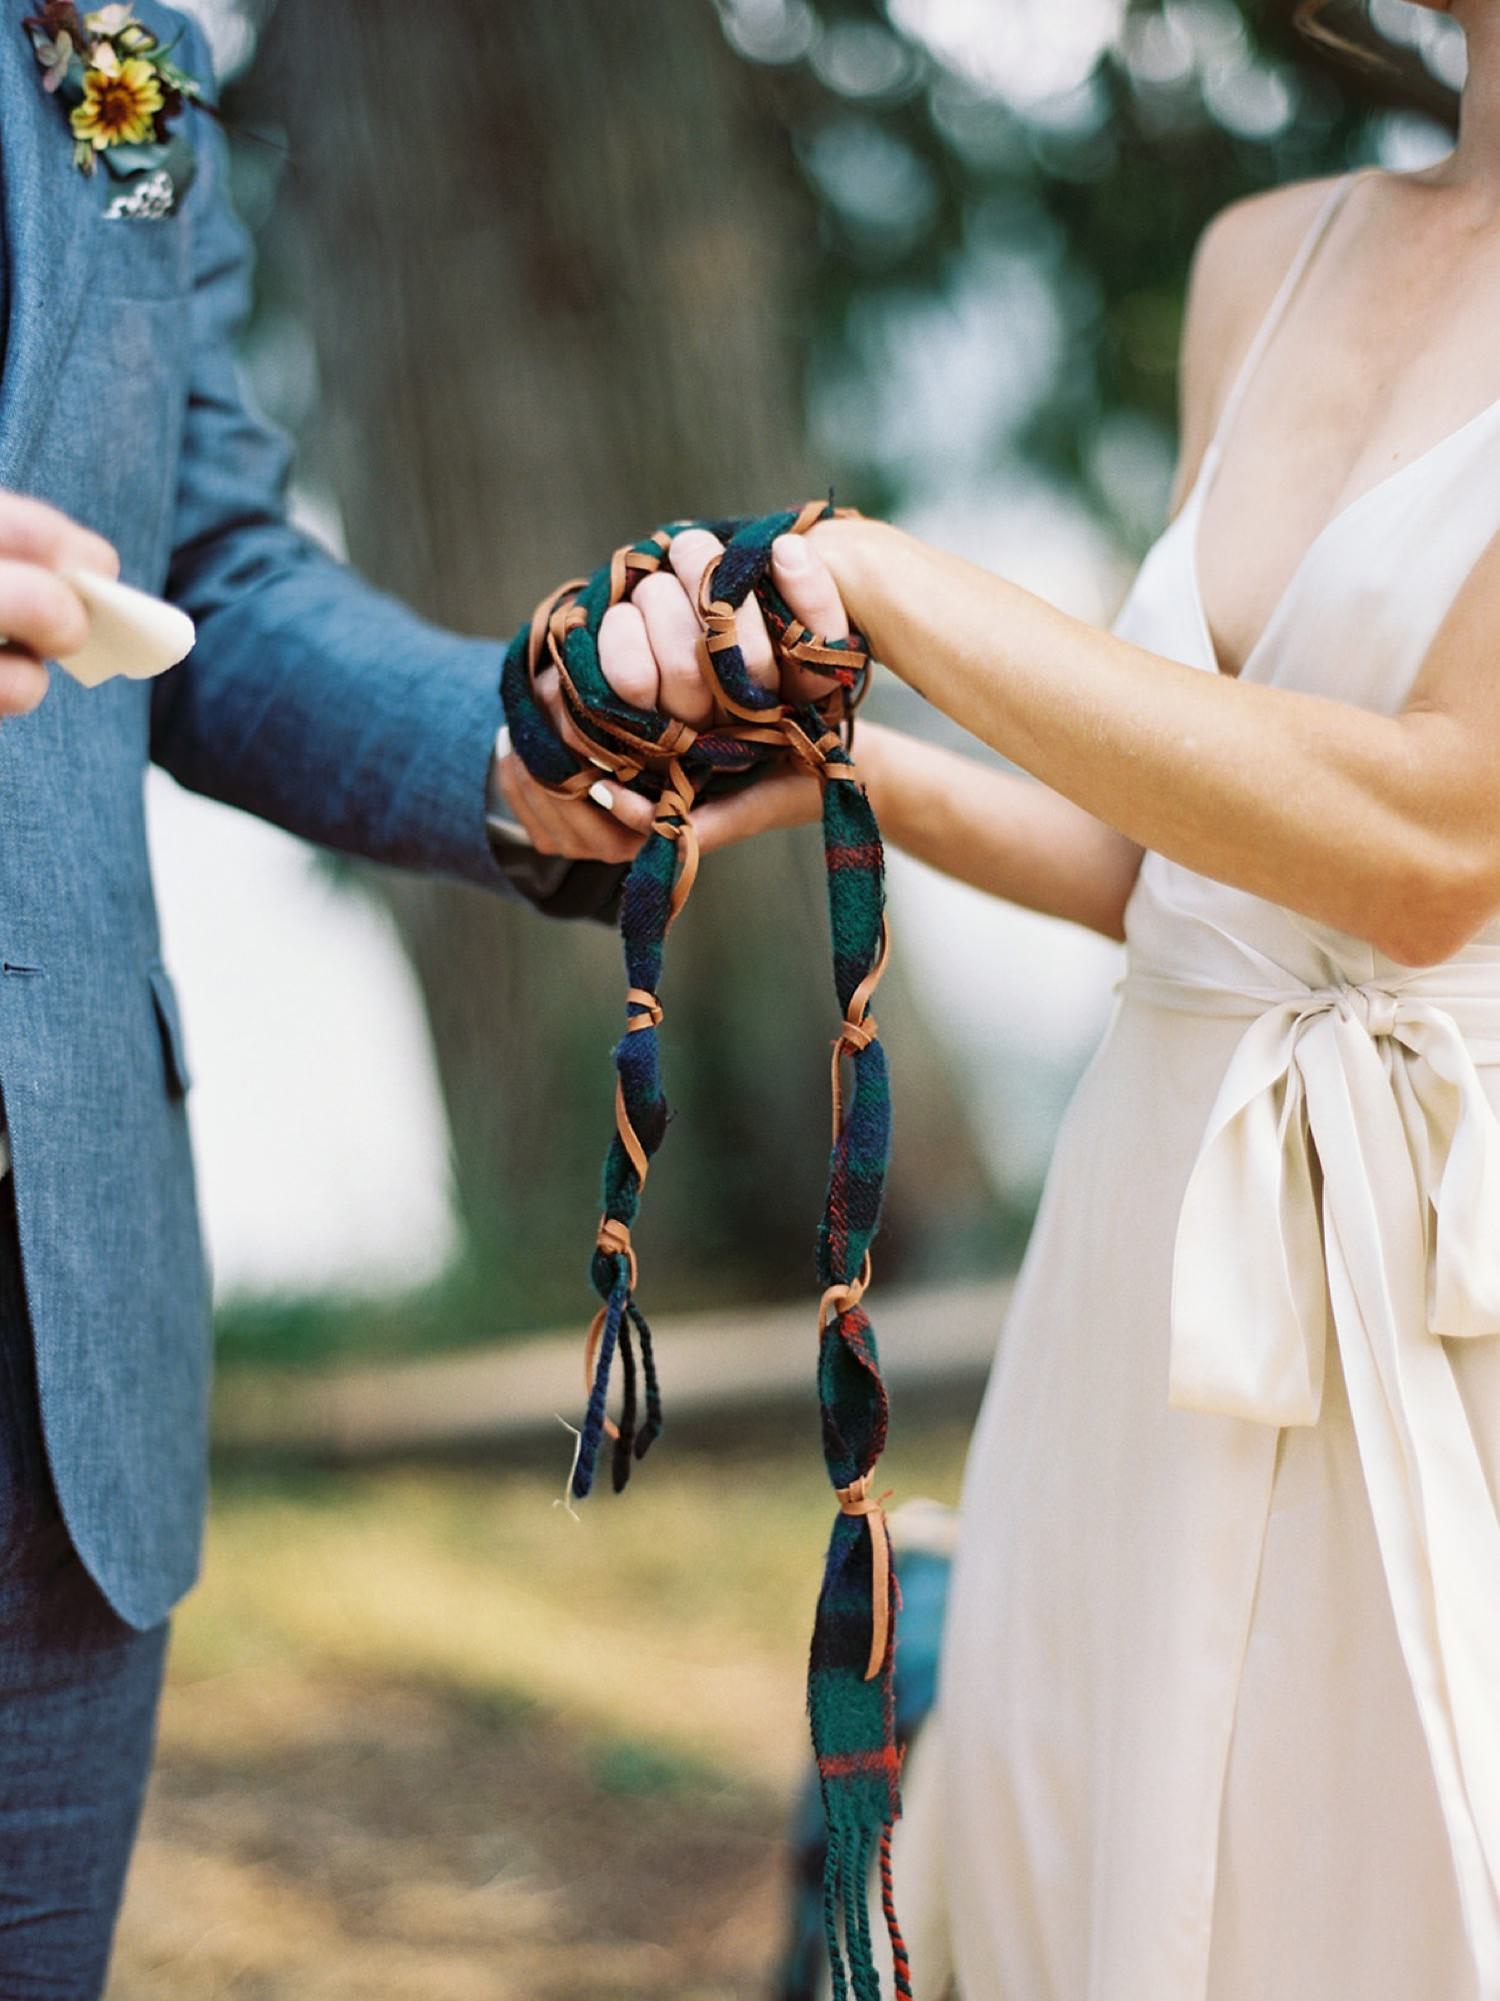 Handfasting ceremony at an intimate backyard wedding captured by Anna Peters